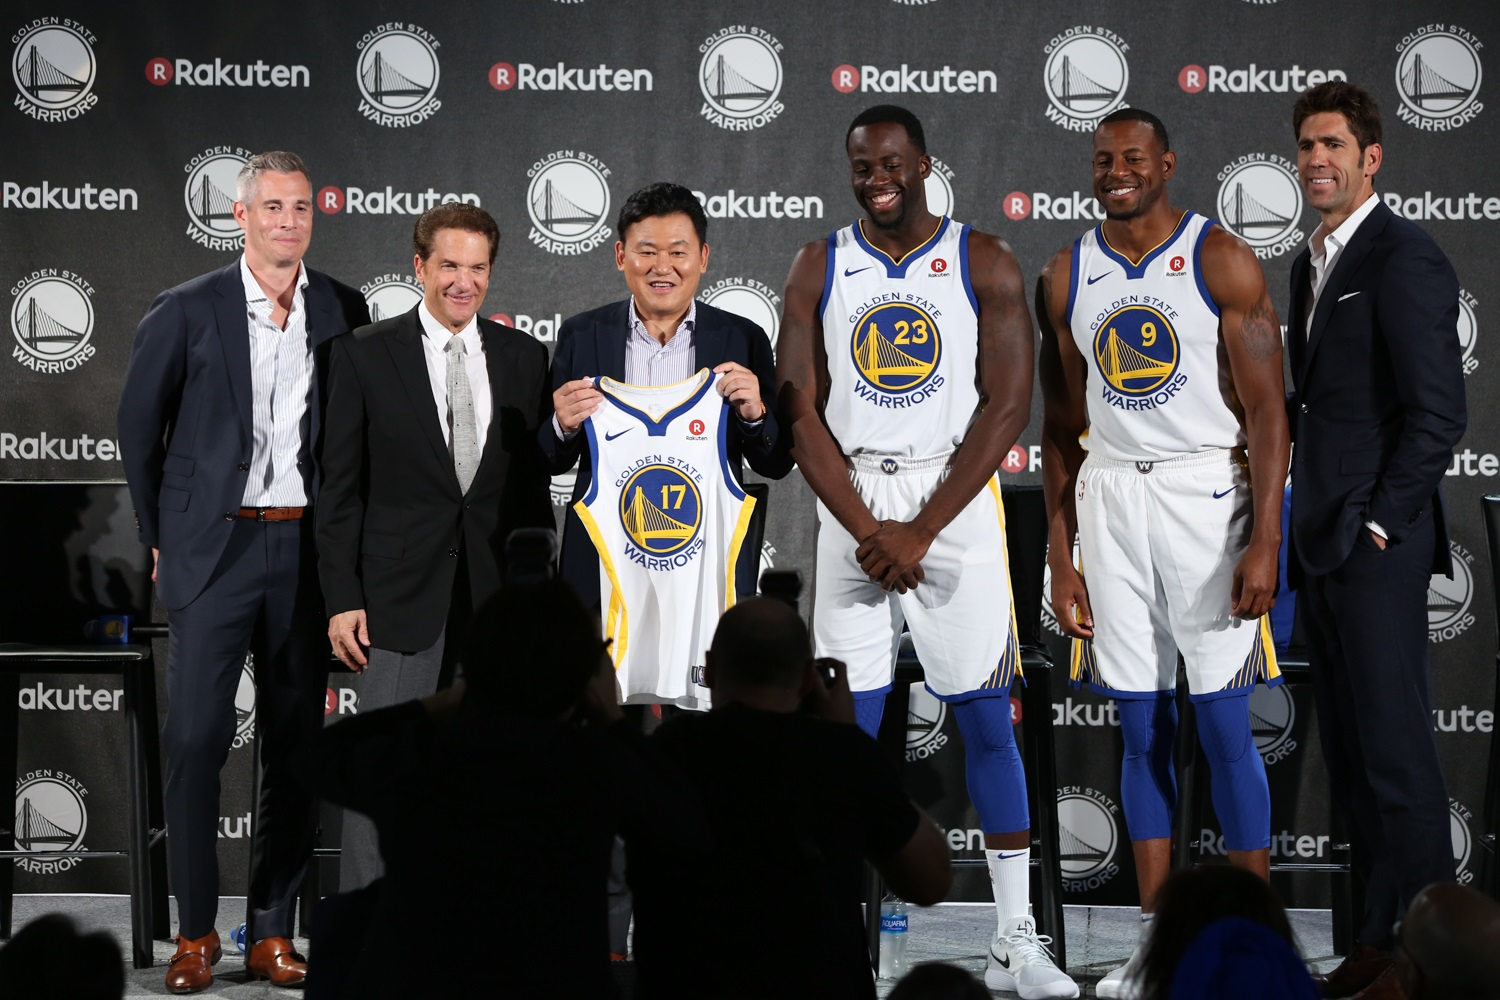 d08ea3521 Rakuten and Golden State Warriors have a ball at partnership ...